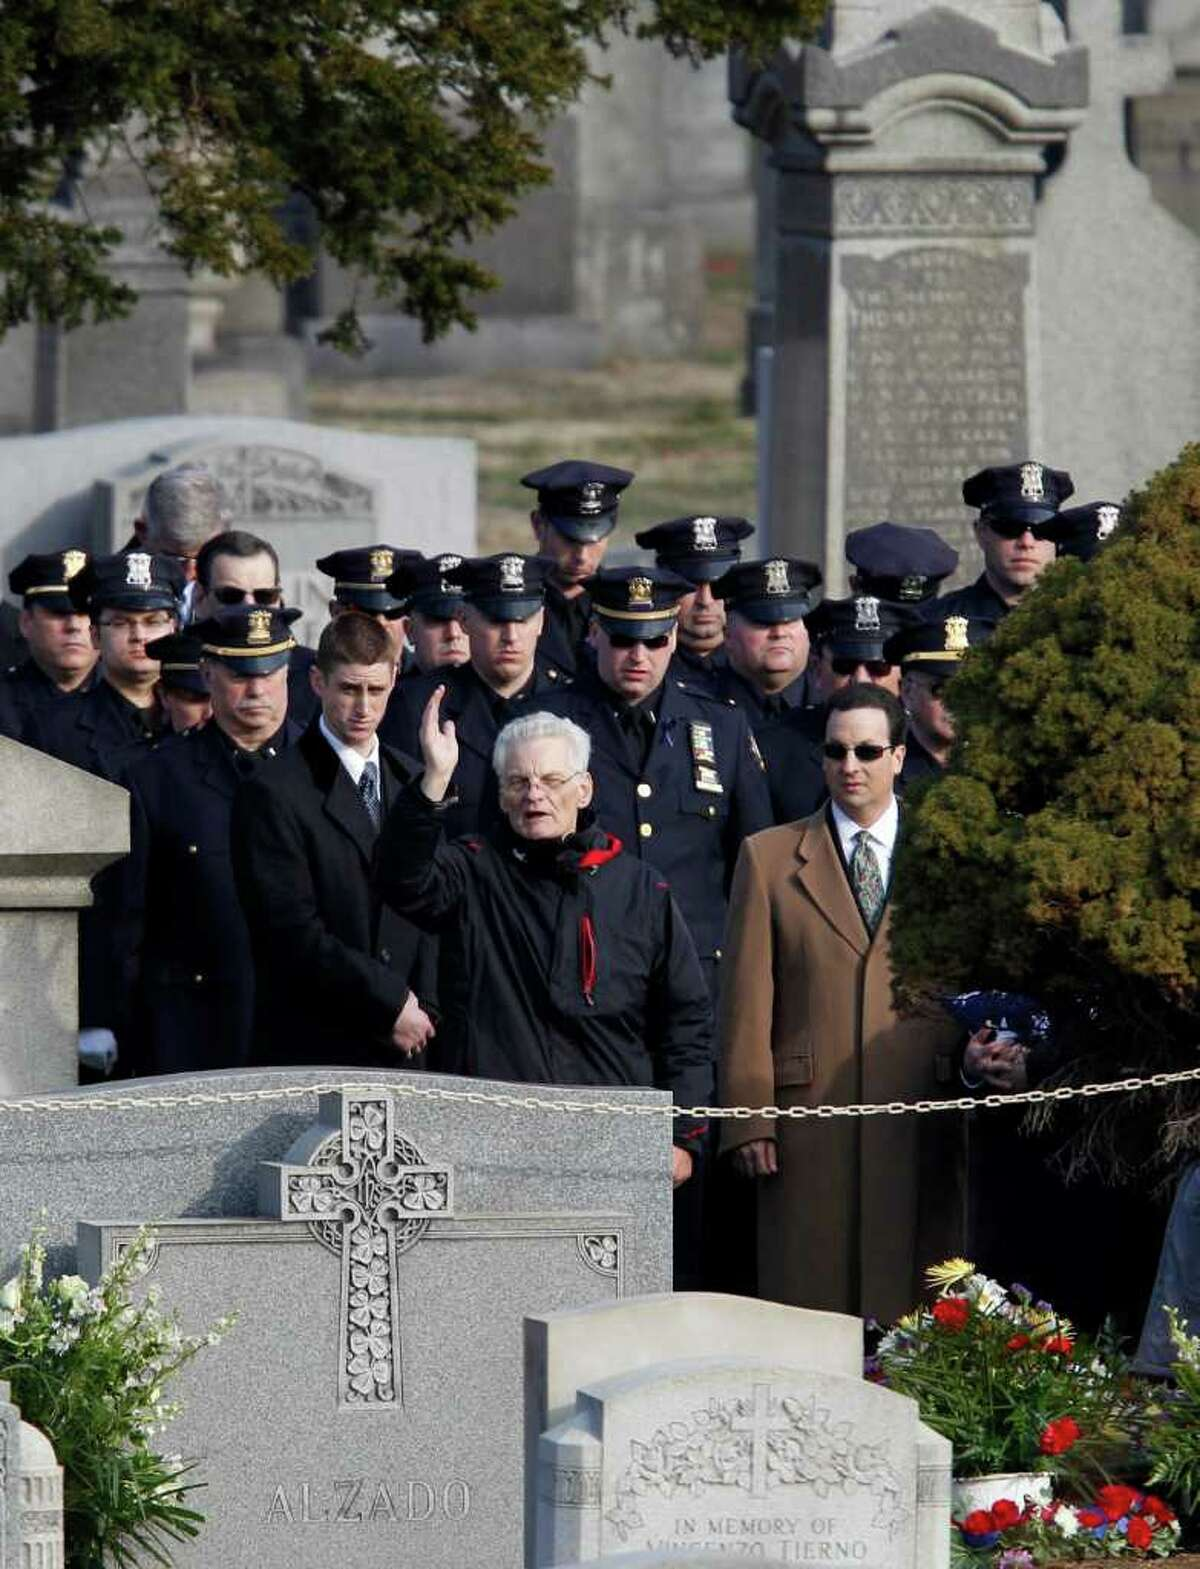 Police officers look on as a priest presides over the burial of slain Poughkeepsie police Detective John Falcone at Brooklyn's Holy Cross Cemetery in New York, Thursday, Feb. 24, 2011. Falcone was killed as he helped rescue a 3-year-old girl. (AP Photo/Kathy Willens)